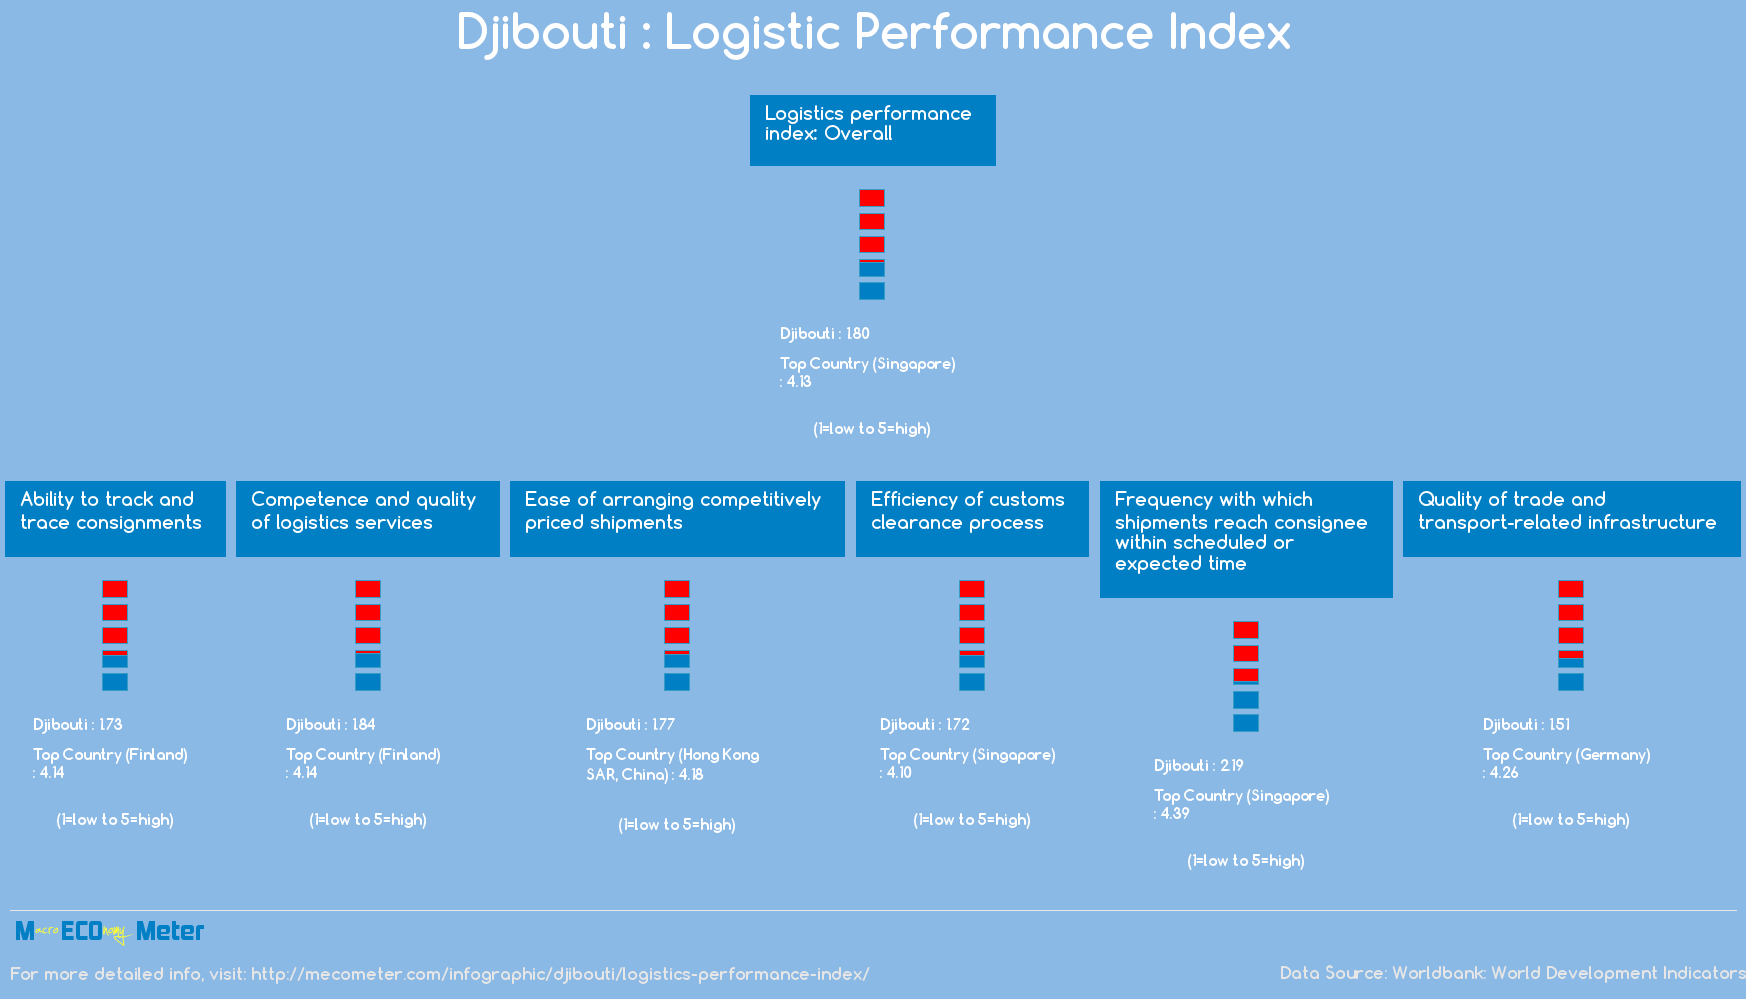 Djibouti : Logistic Performance Index